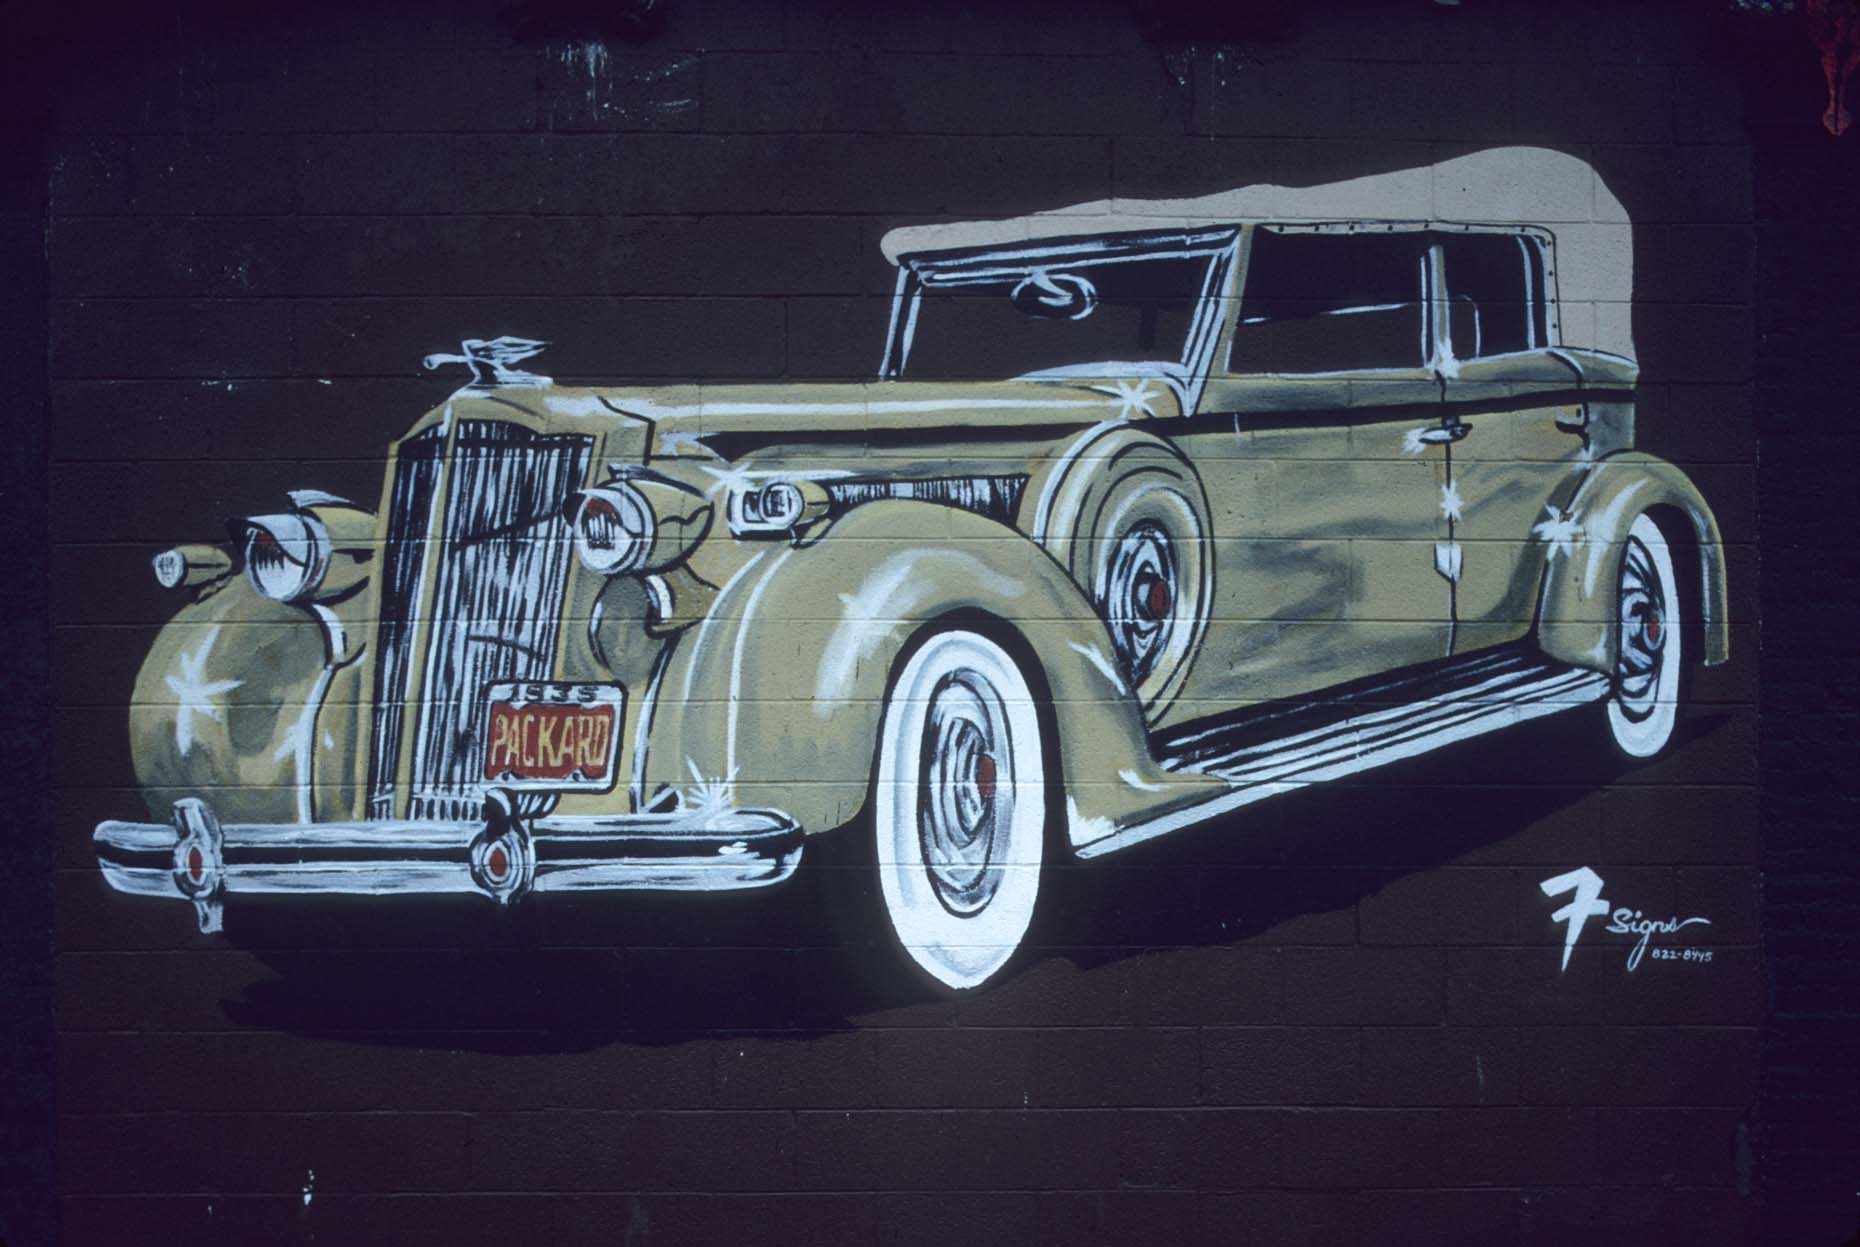 14_1935 Packard, F Signs, 2737 Grand River Blvd-DUP., Detroit, 1998_.jpg